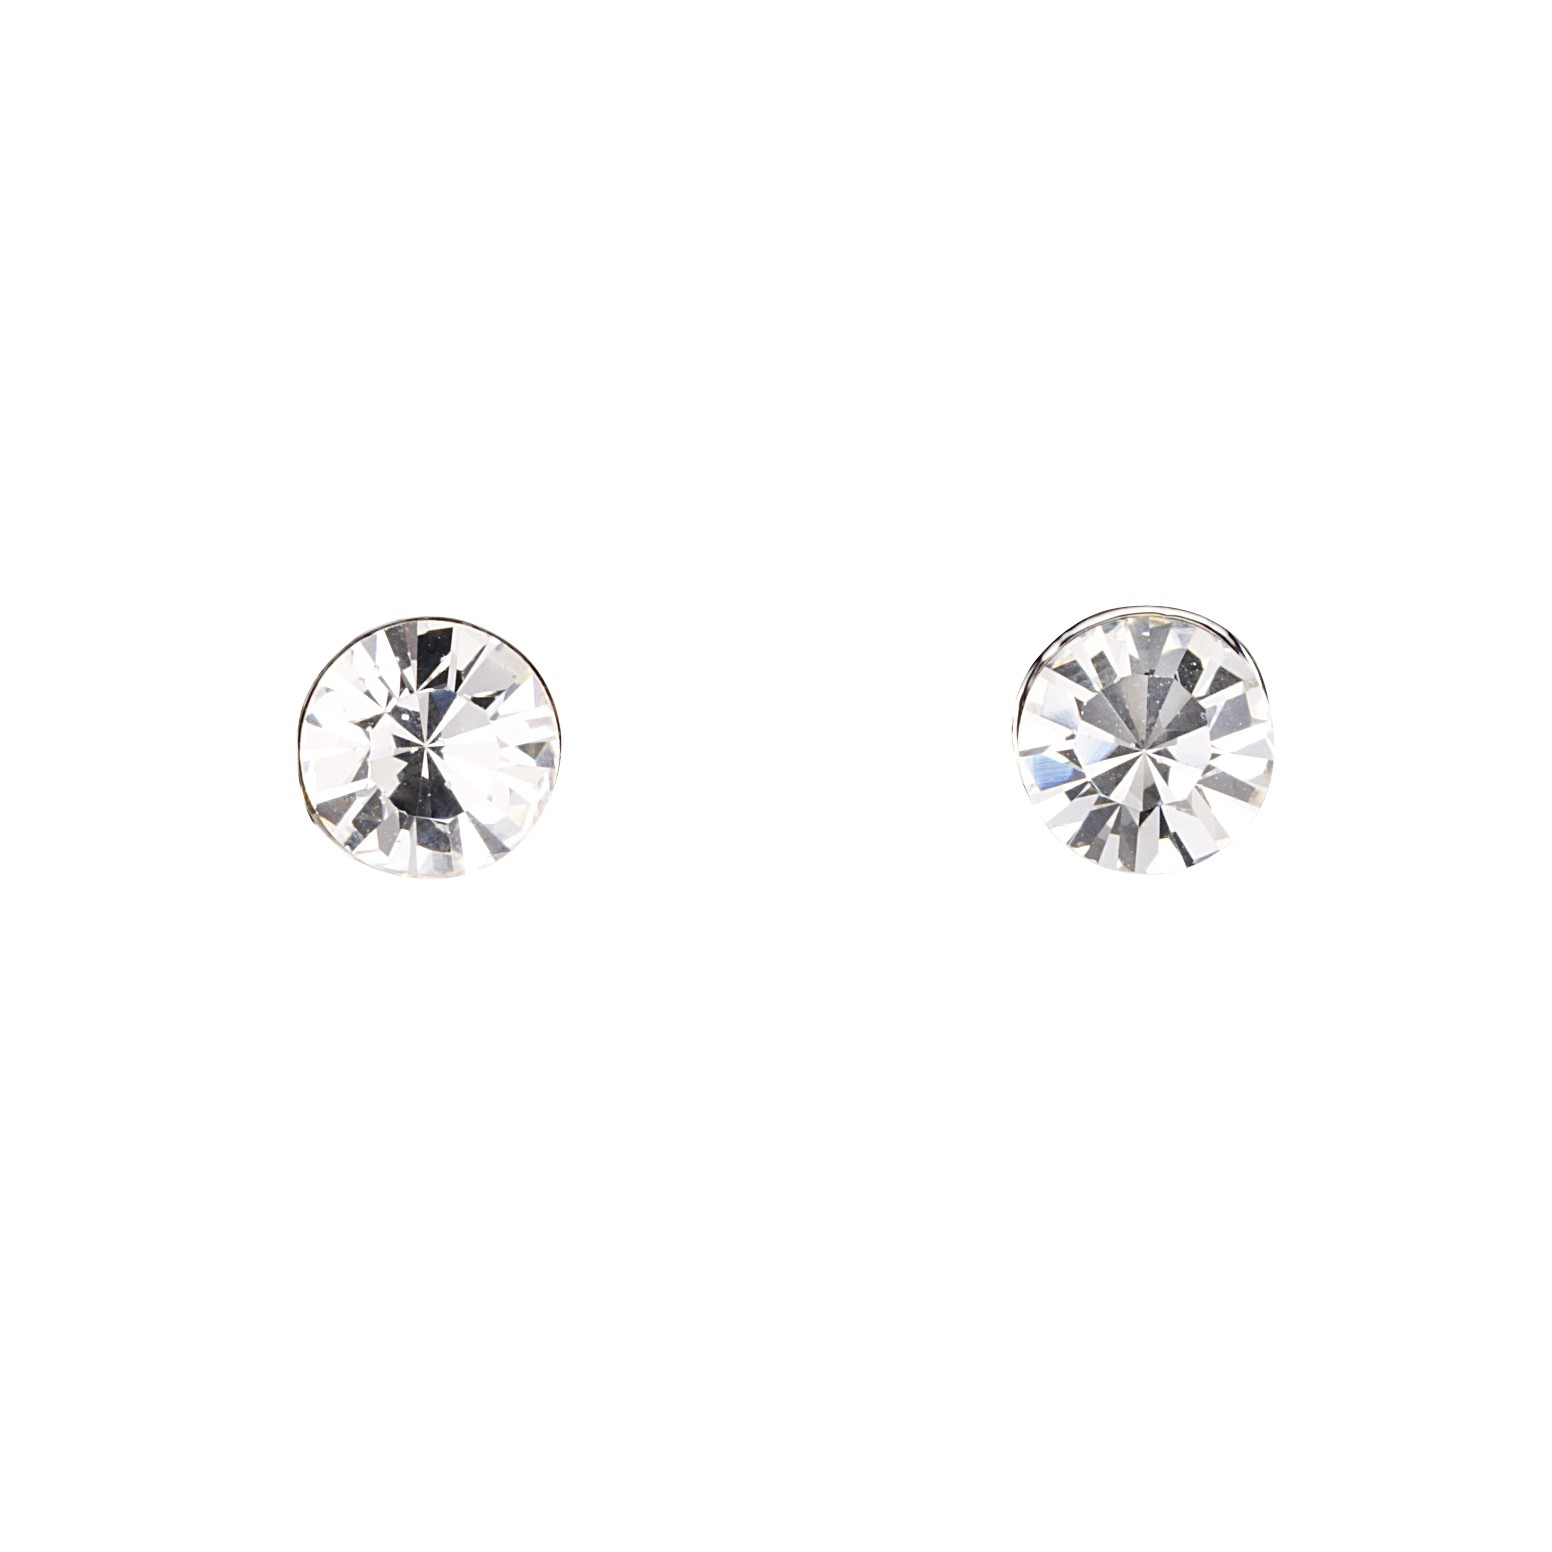 dublos crystal caprices earring products white pendant jj by earrings swarovski